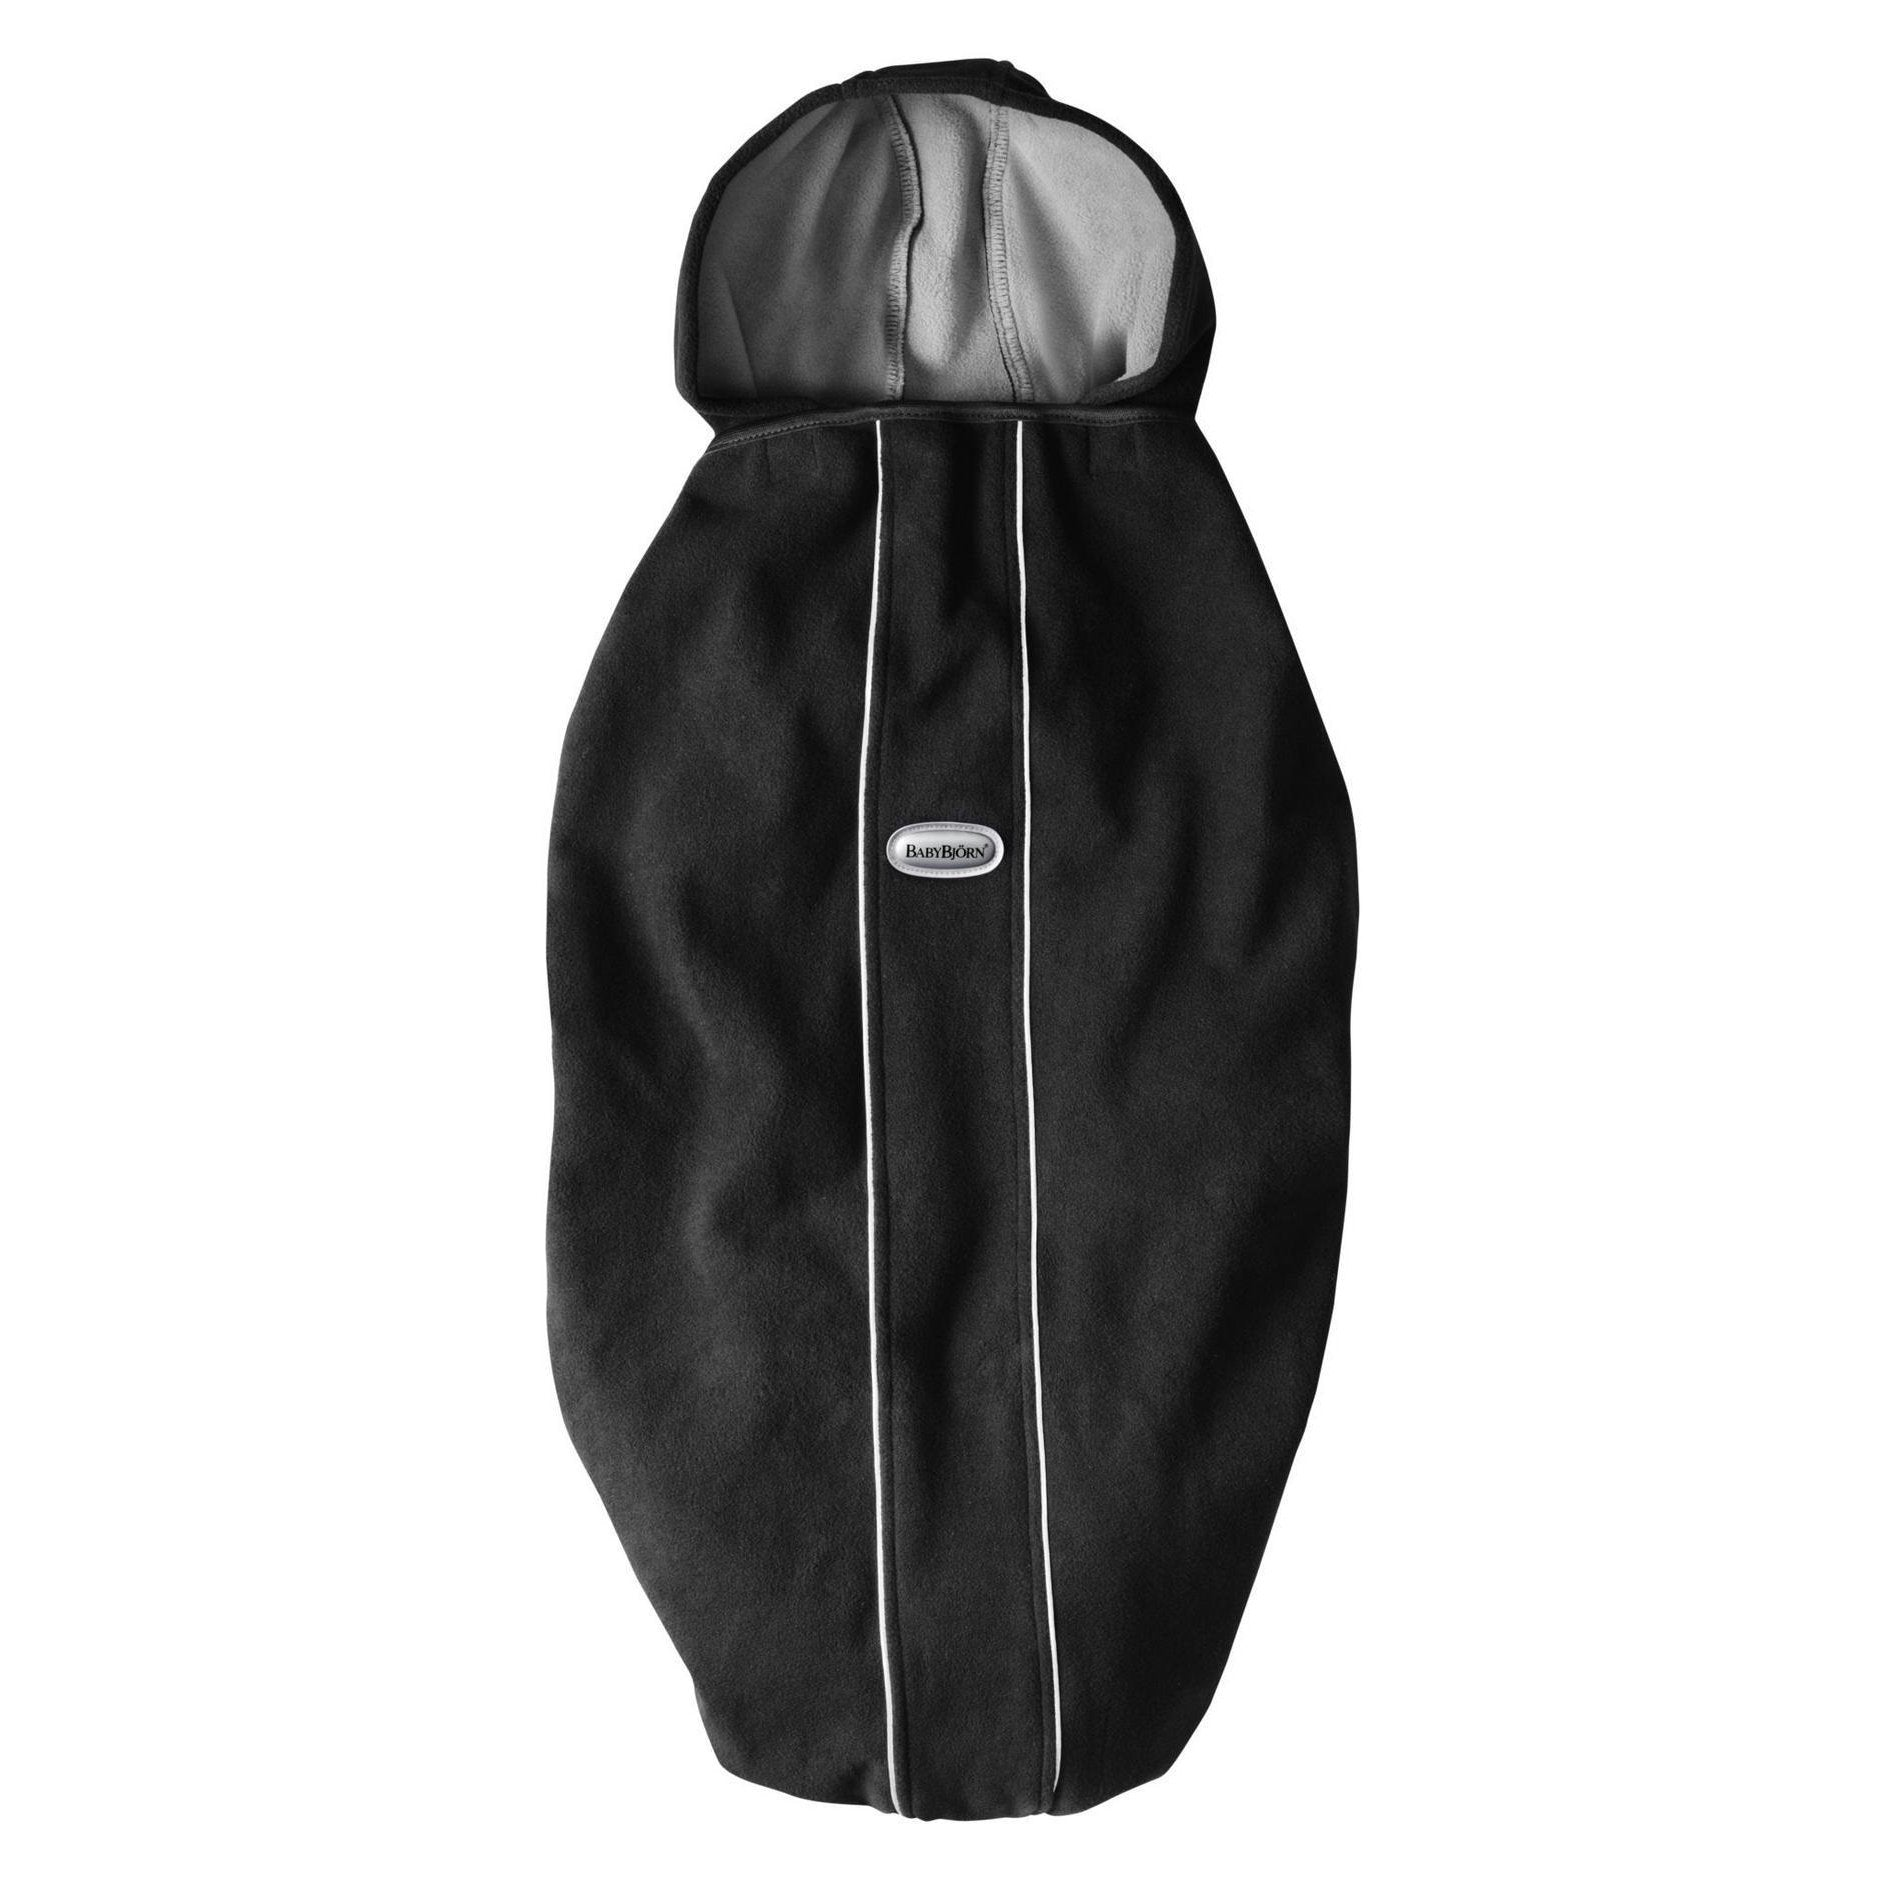 BabyBjorn Cover for Baby Carrier Black